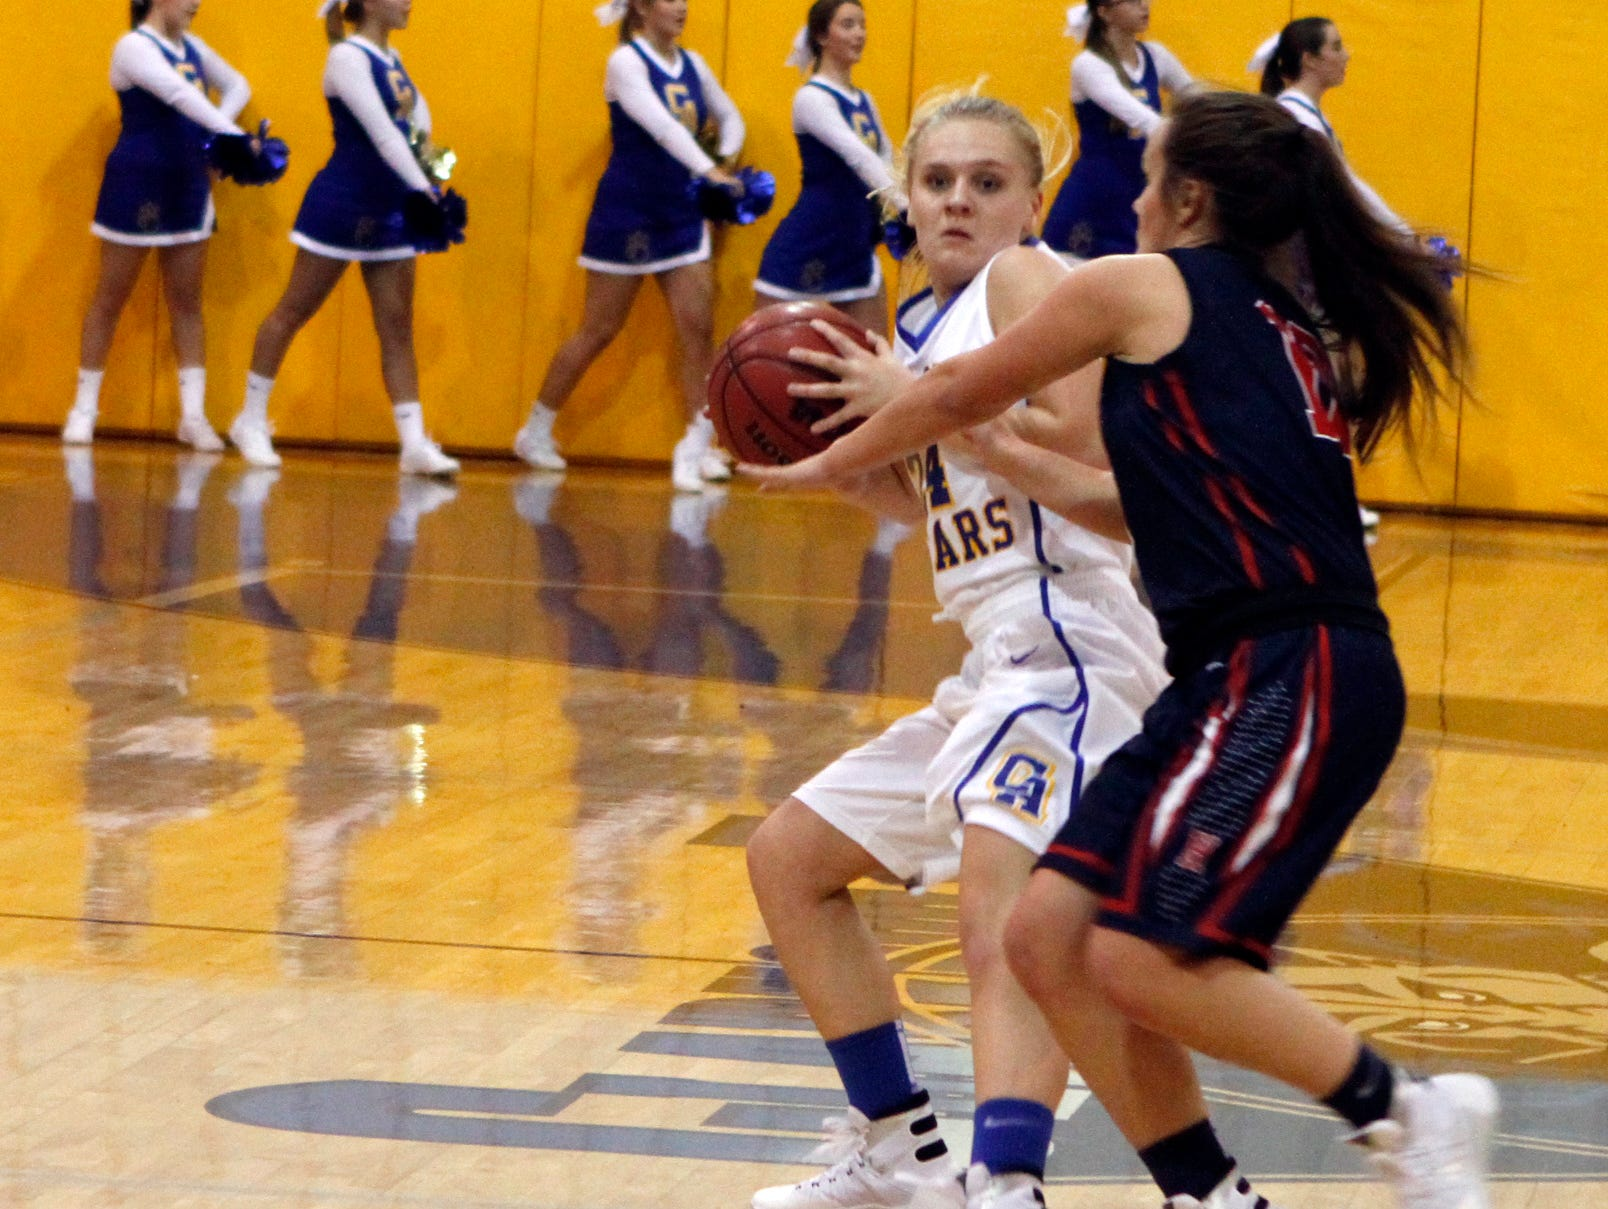 Clarksville Academy's Abbey Hogan faced a strong White House-Heritage defense Thursday night. The Lady Cougars were held to just 20 points.